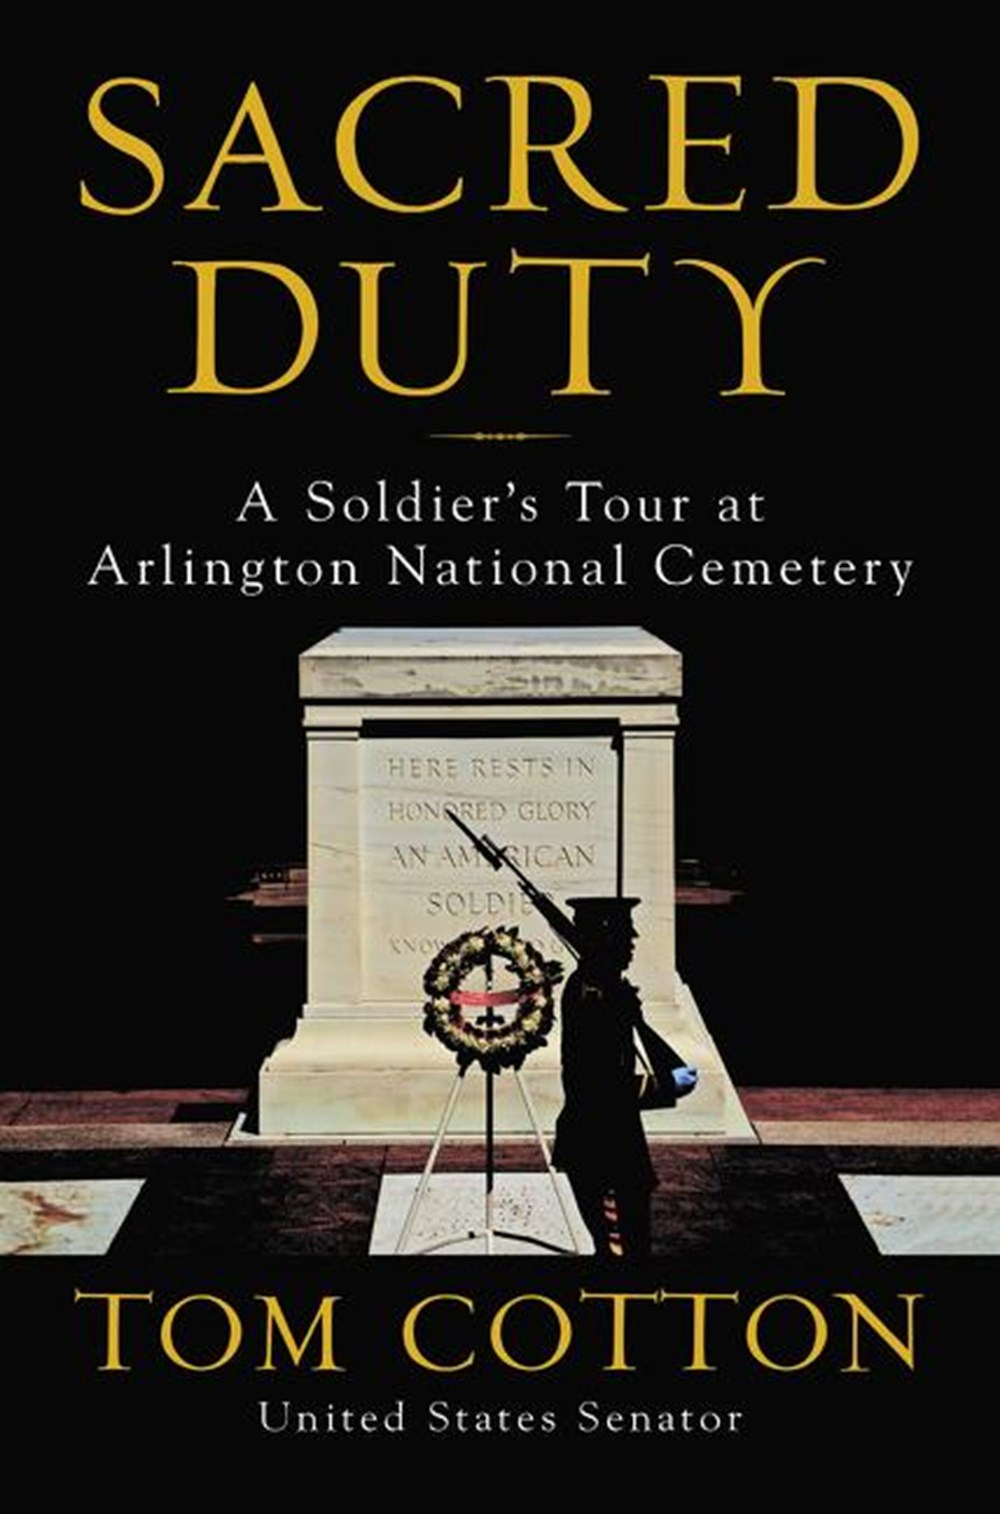 Sacred Duty A Soldier's Tour at Arlington National Cemetery